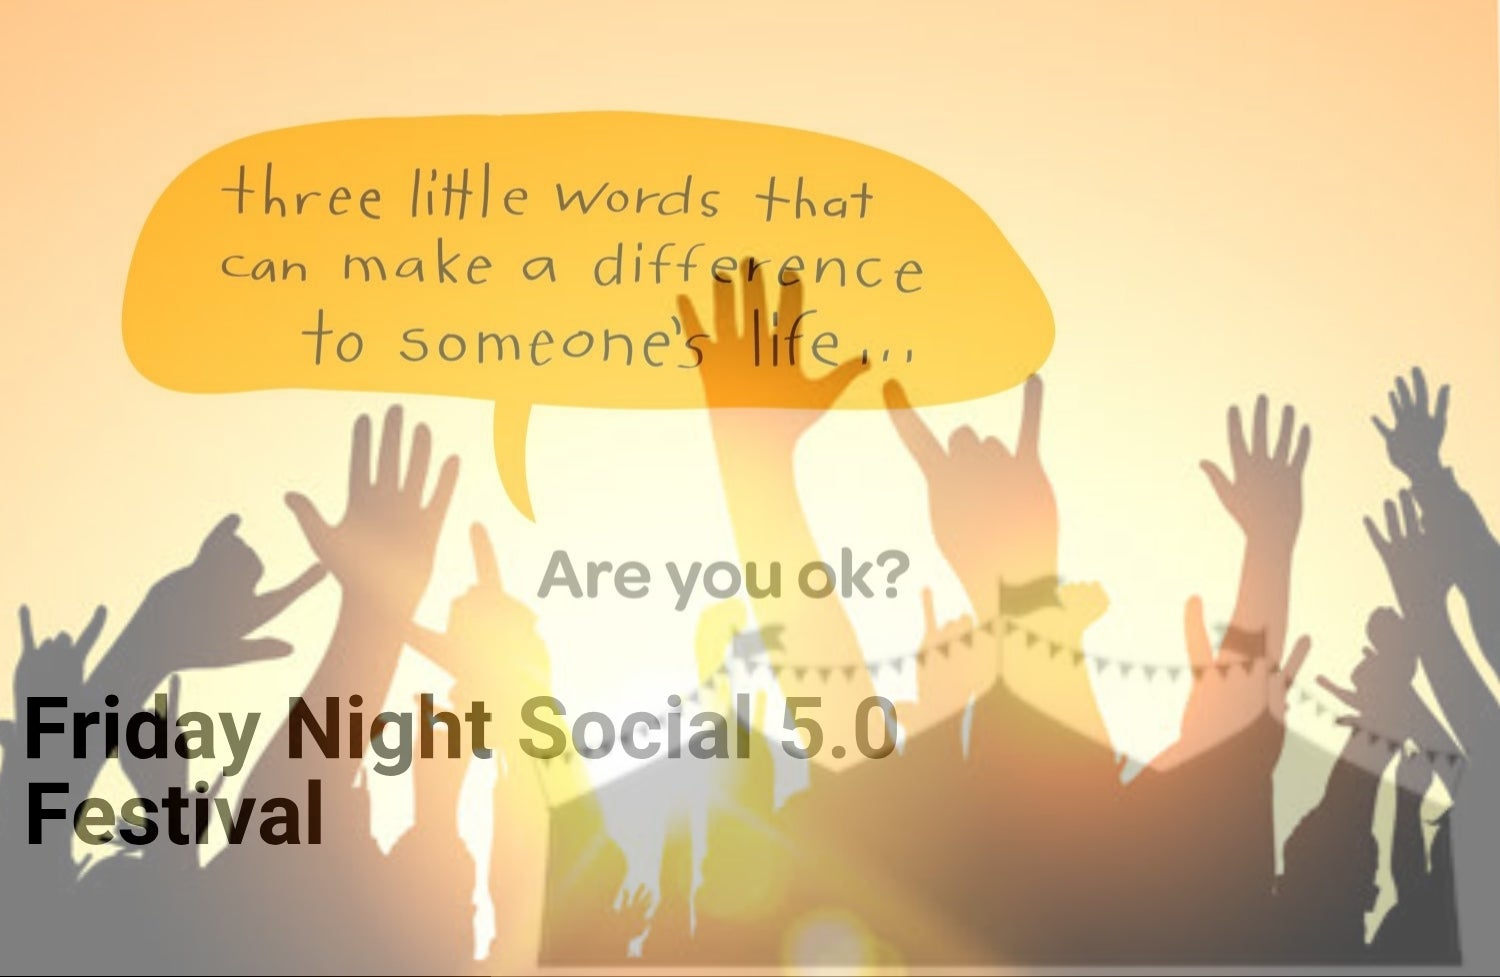 Image of Friday Night Social 5.0 Festival